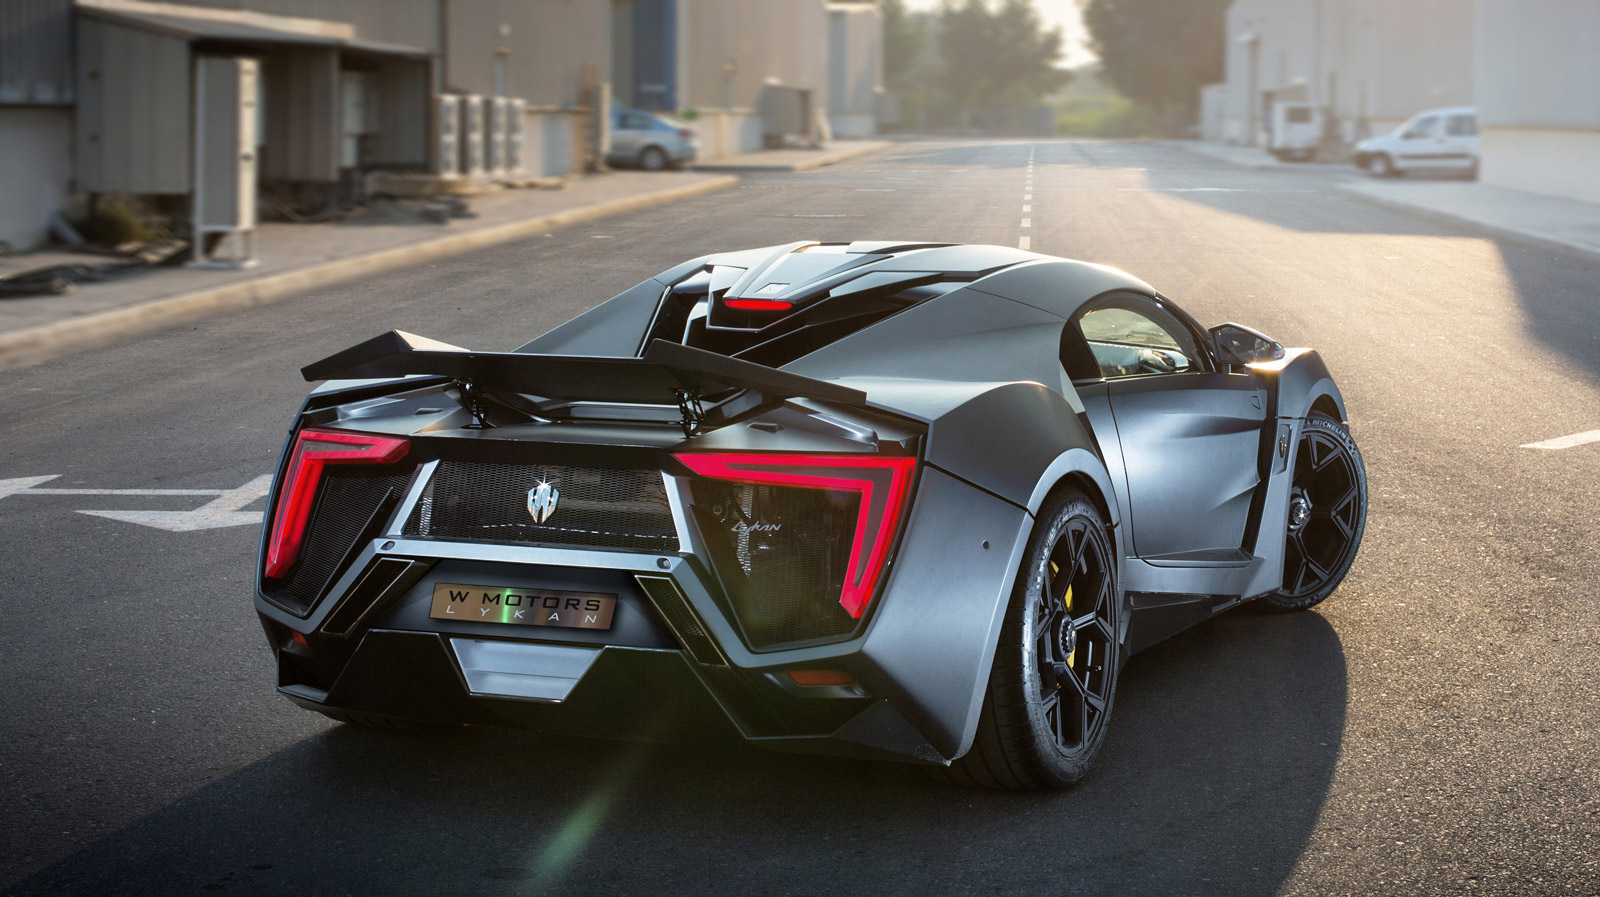 Lykan Hypersport Top View >> 770-horsepower Lykan Hypersport set for 2014 Top Marques Monaco debut